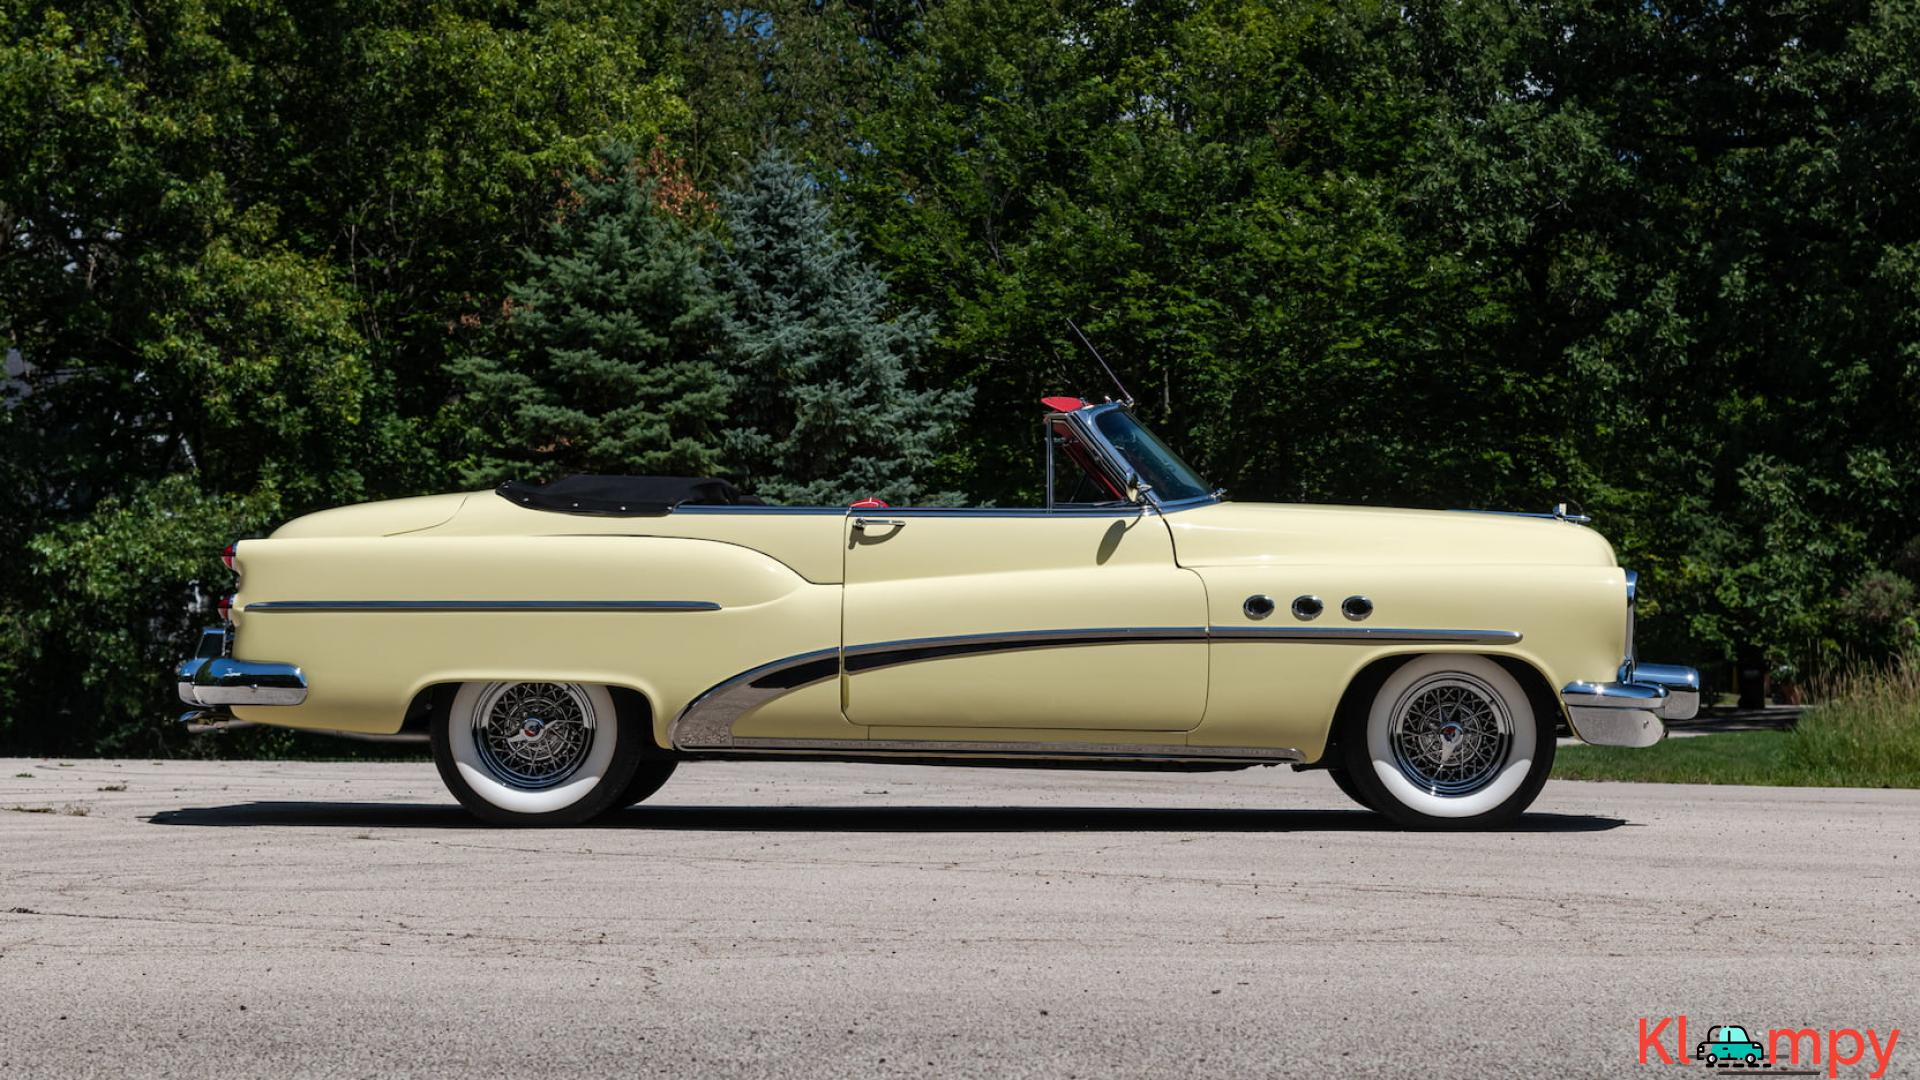 1953 Buick Super Eight Convertible - 3/15